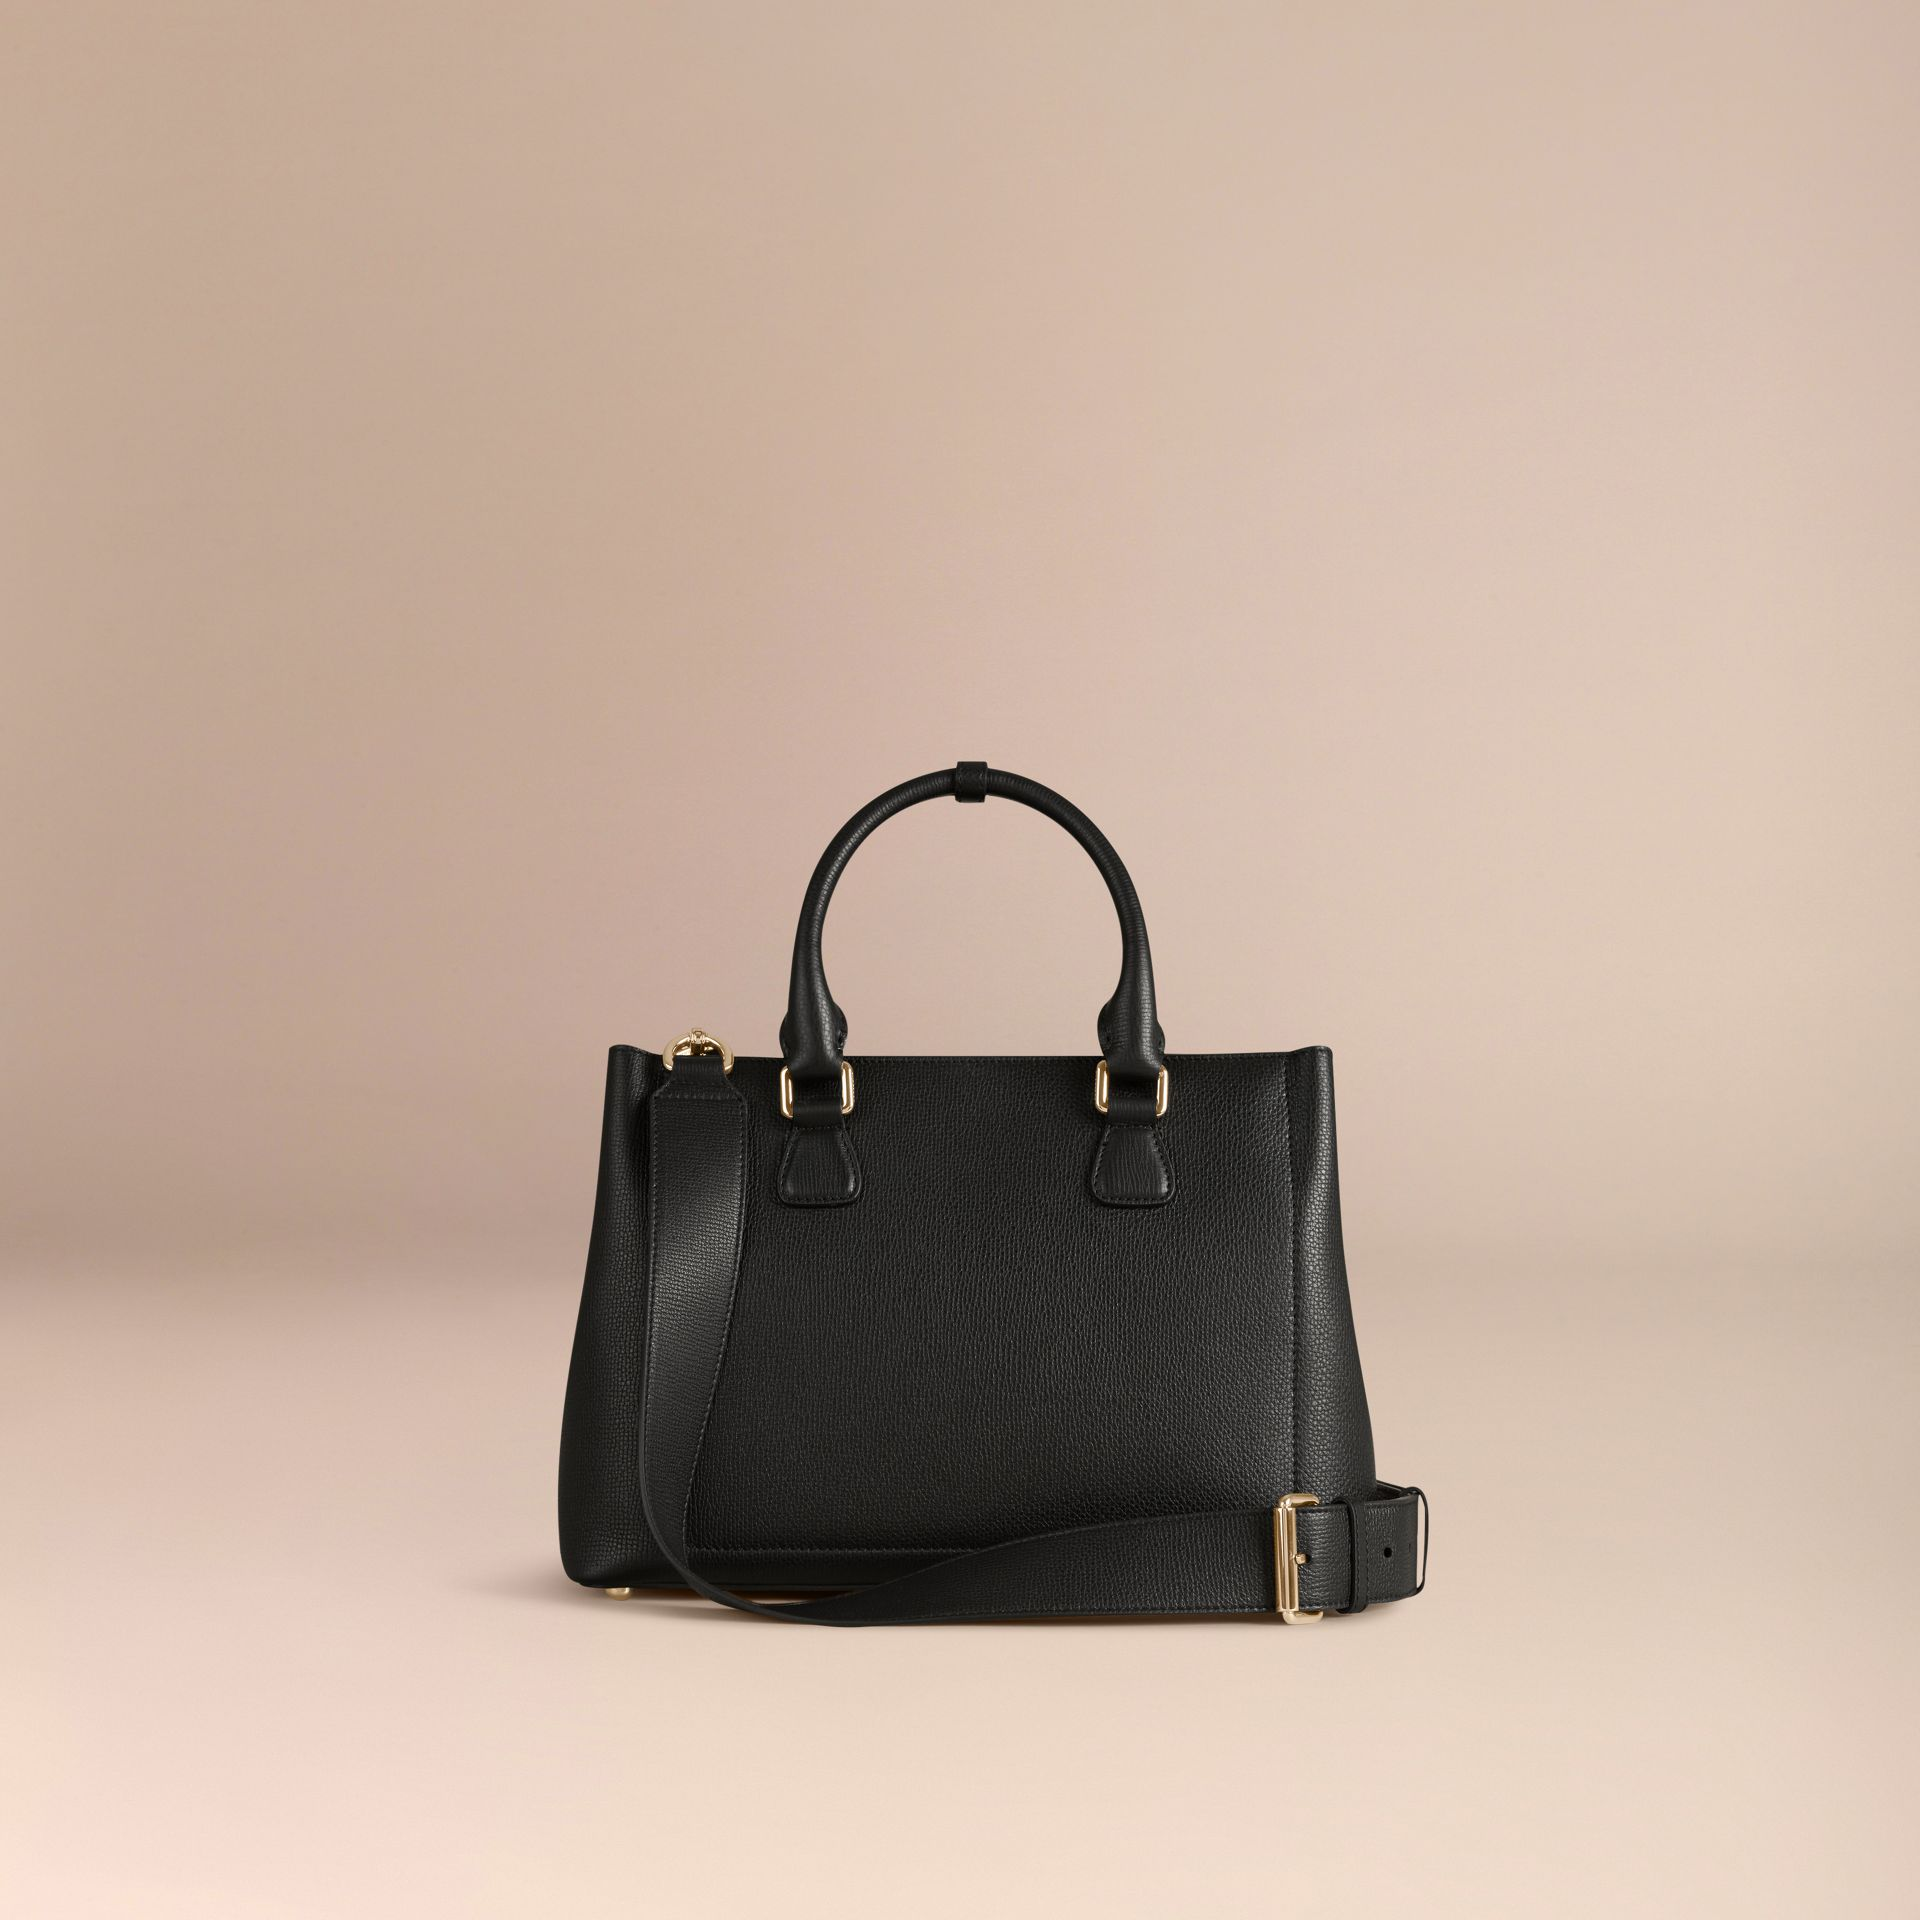 Black The Medium Saddle Bag in Grainy Bonded Leather Black - gallery image 4